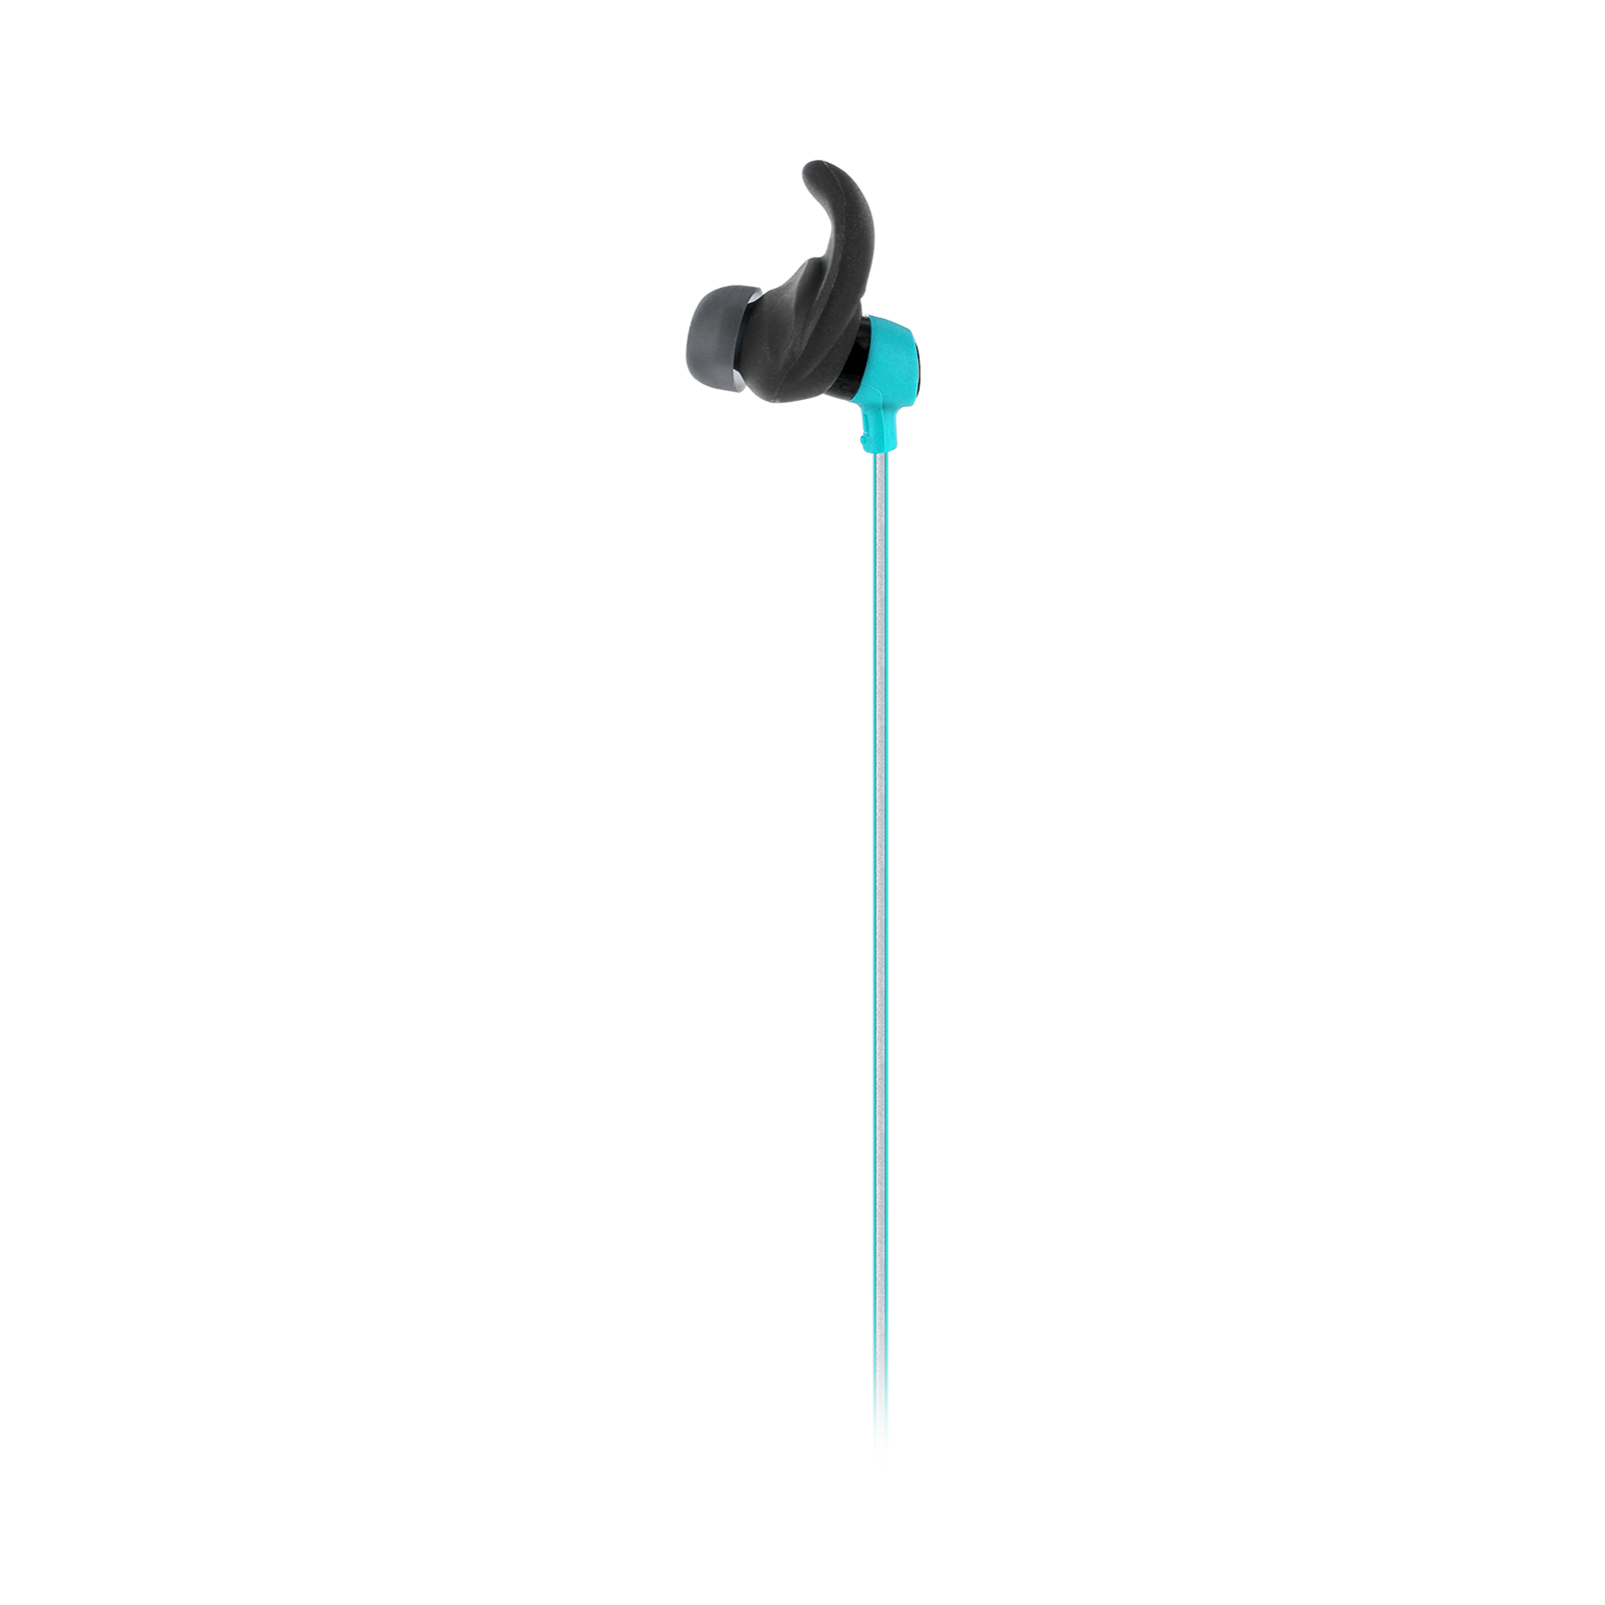 Reflect Mini - Teal - Lightweight, in-ear sport headphones - Detailshot 7